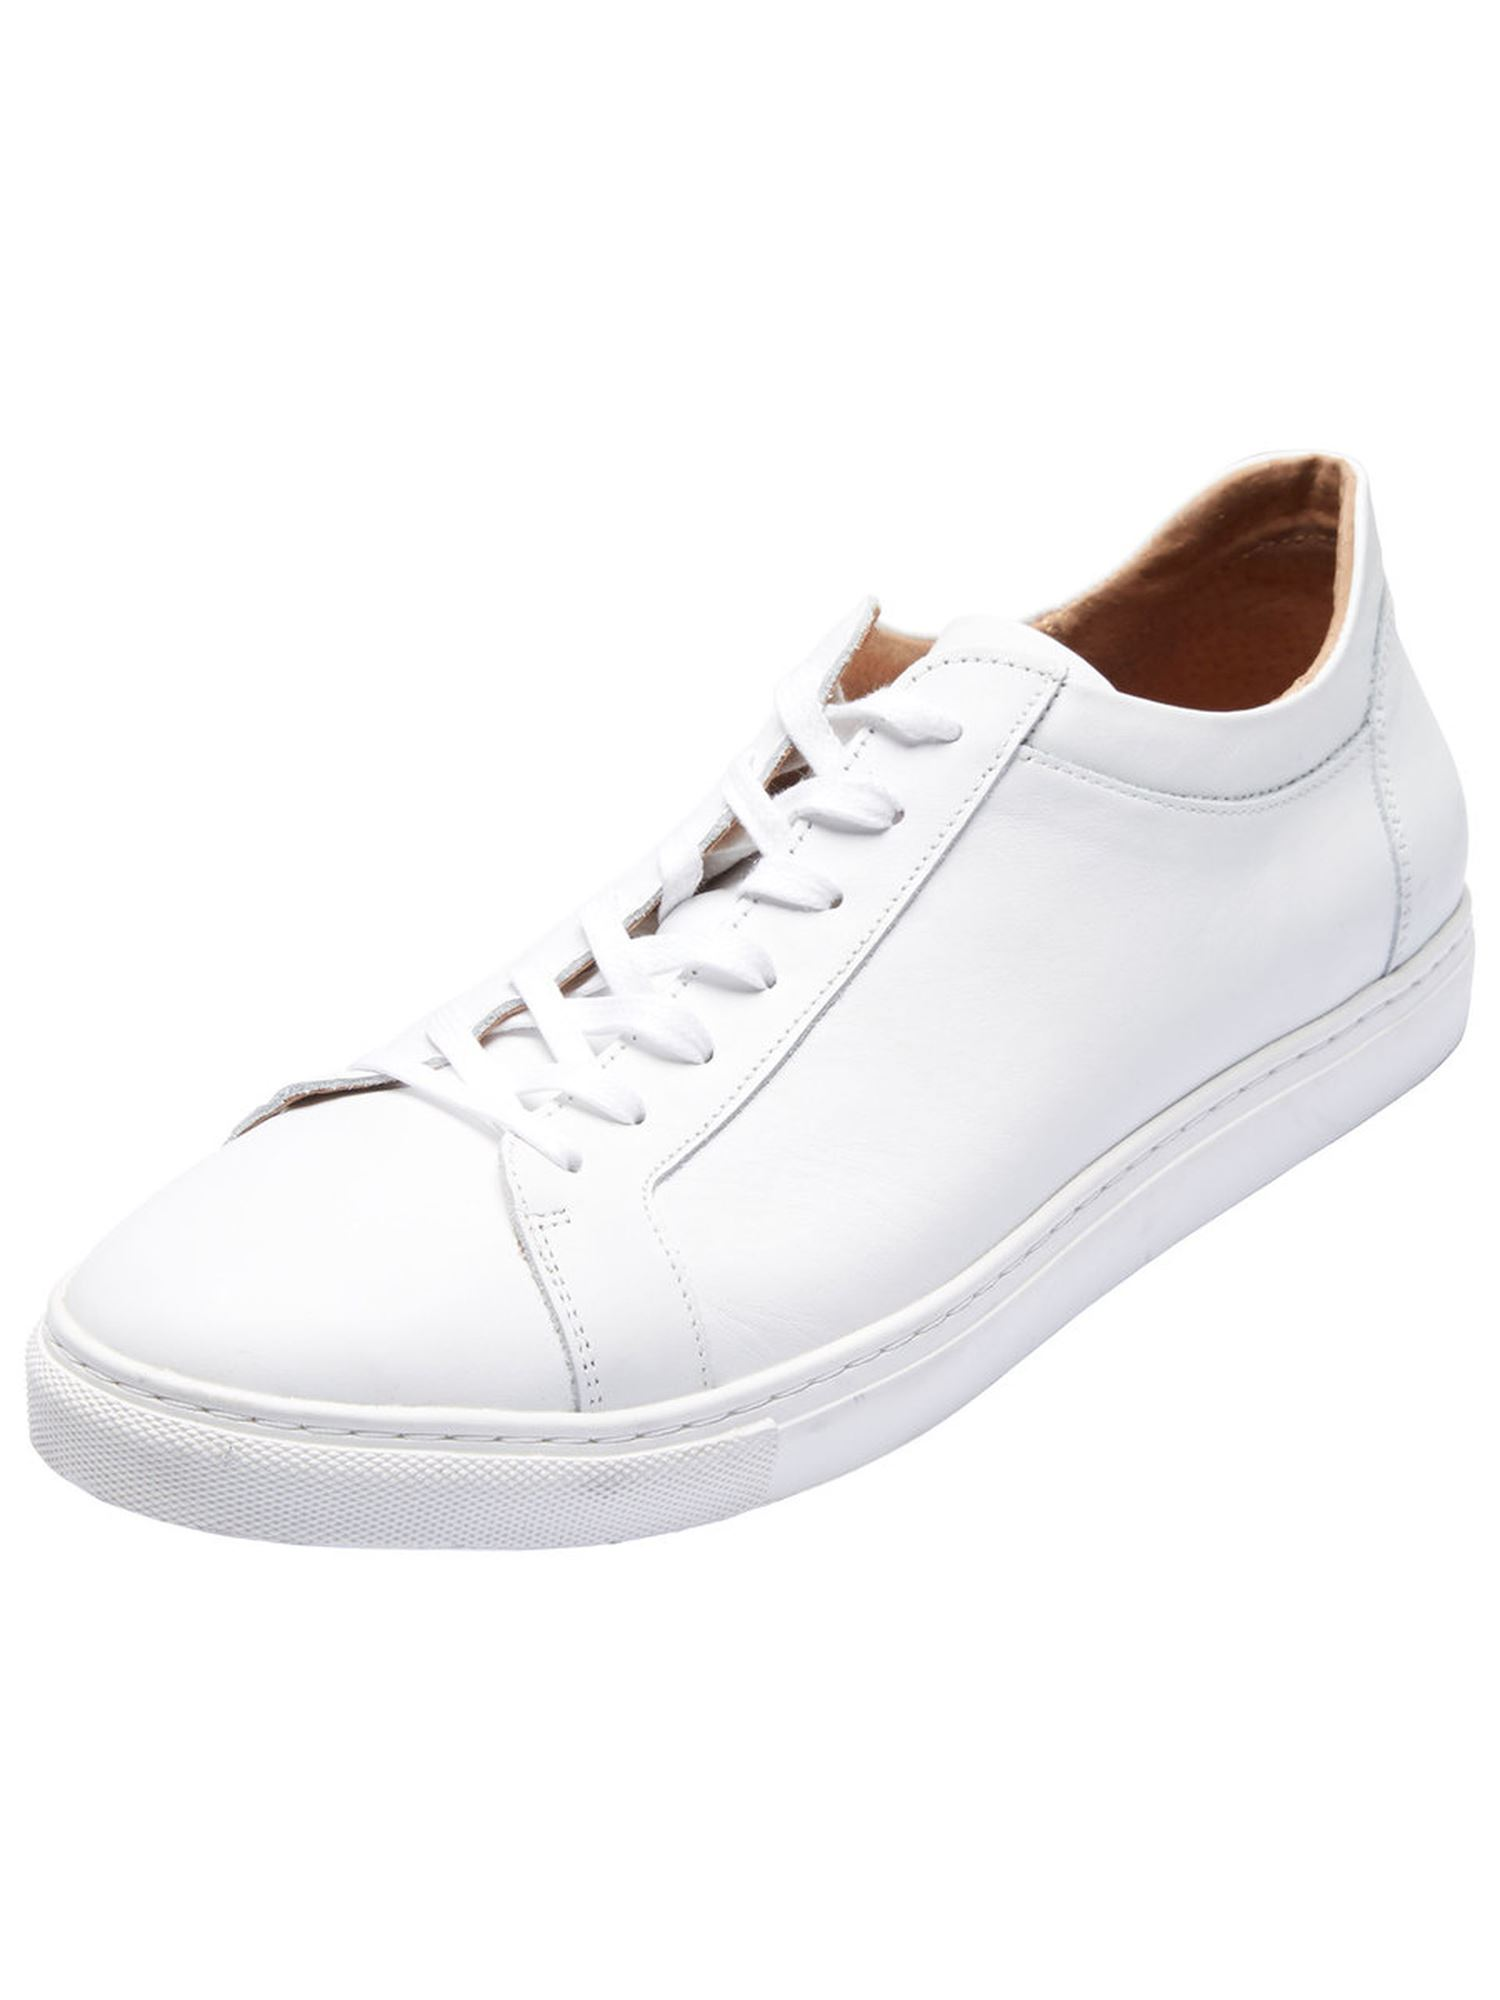 Selected Leather sneakers